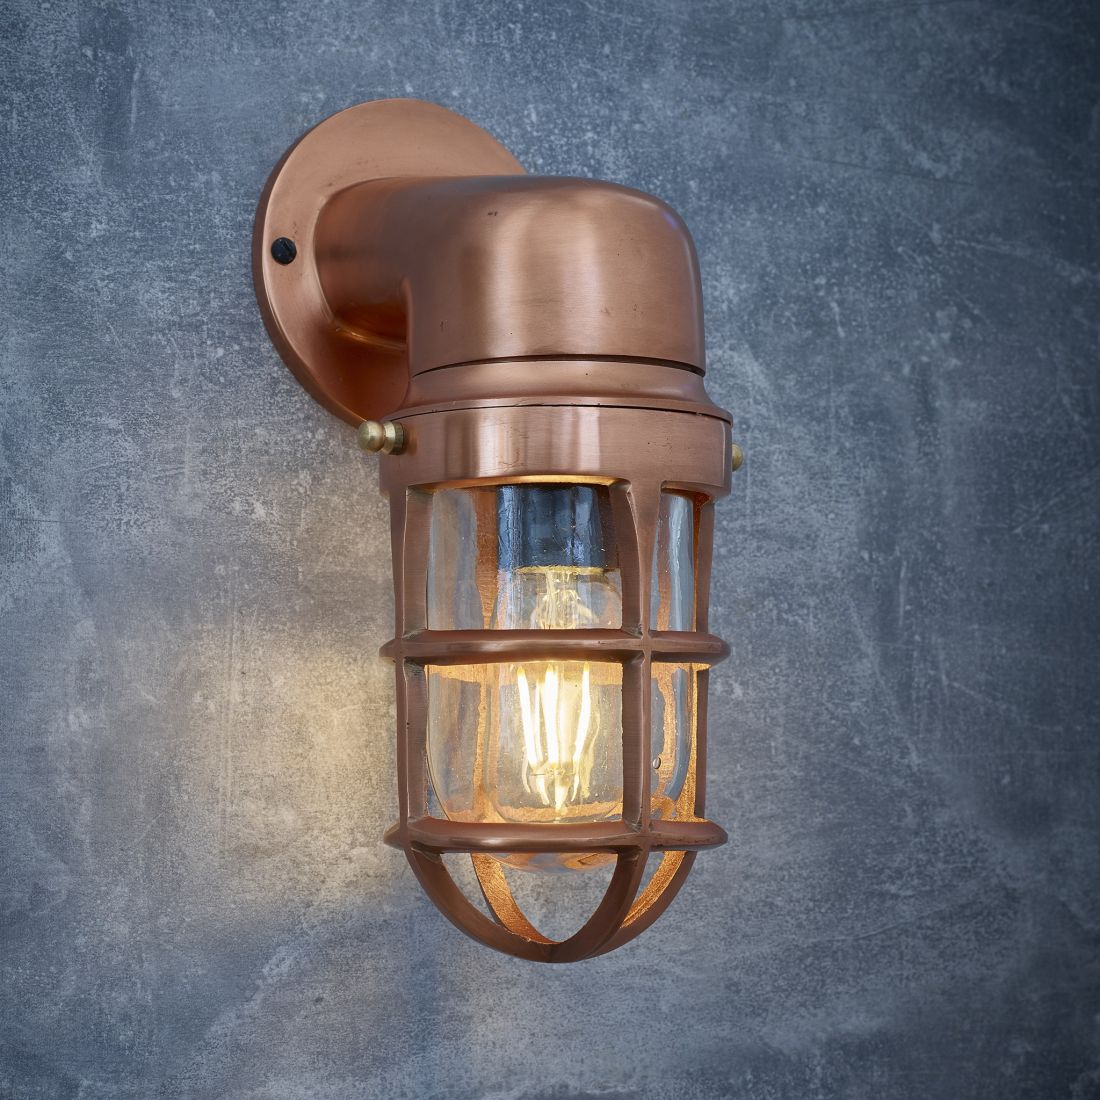 25lime-lace_vintage-industrial-cage-bulkhead-wall-light-sconce-in-copper-by-industville.jpg